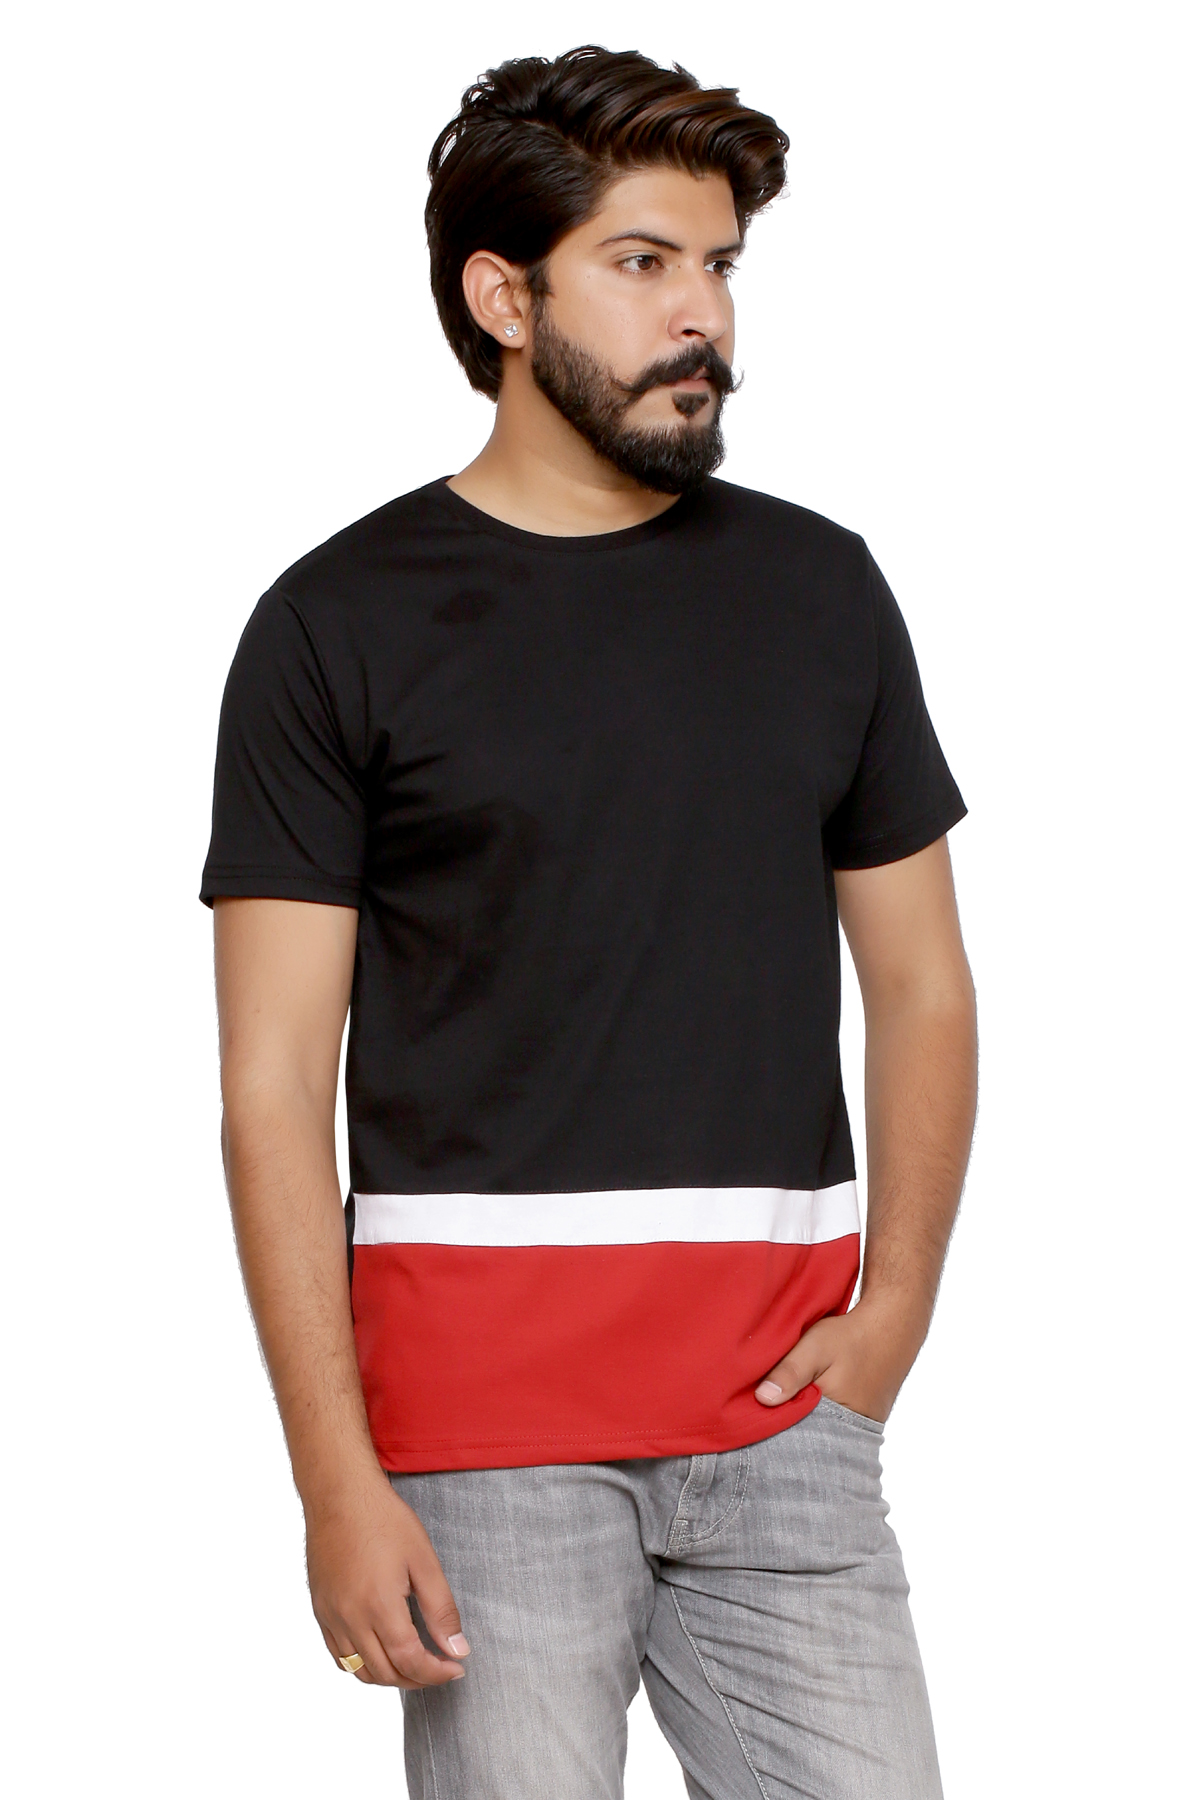 WYC Men Solid White,Black   Red ColorBlocked Round Neck T shirt